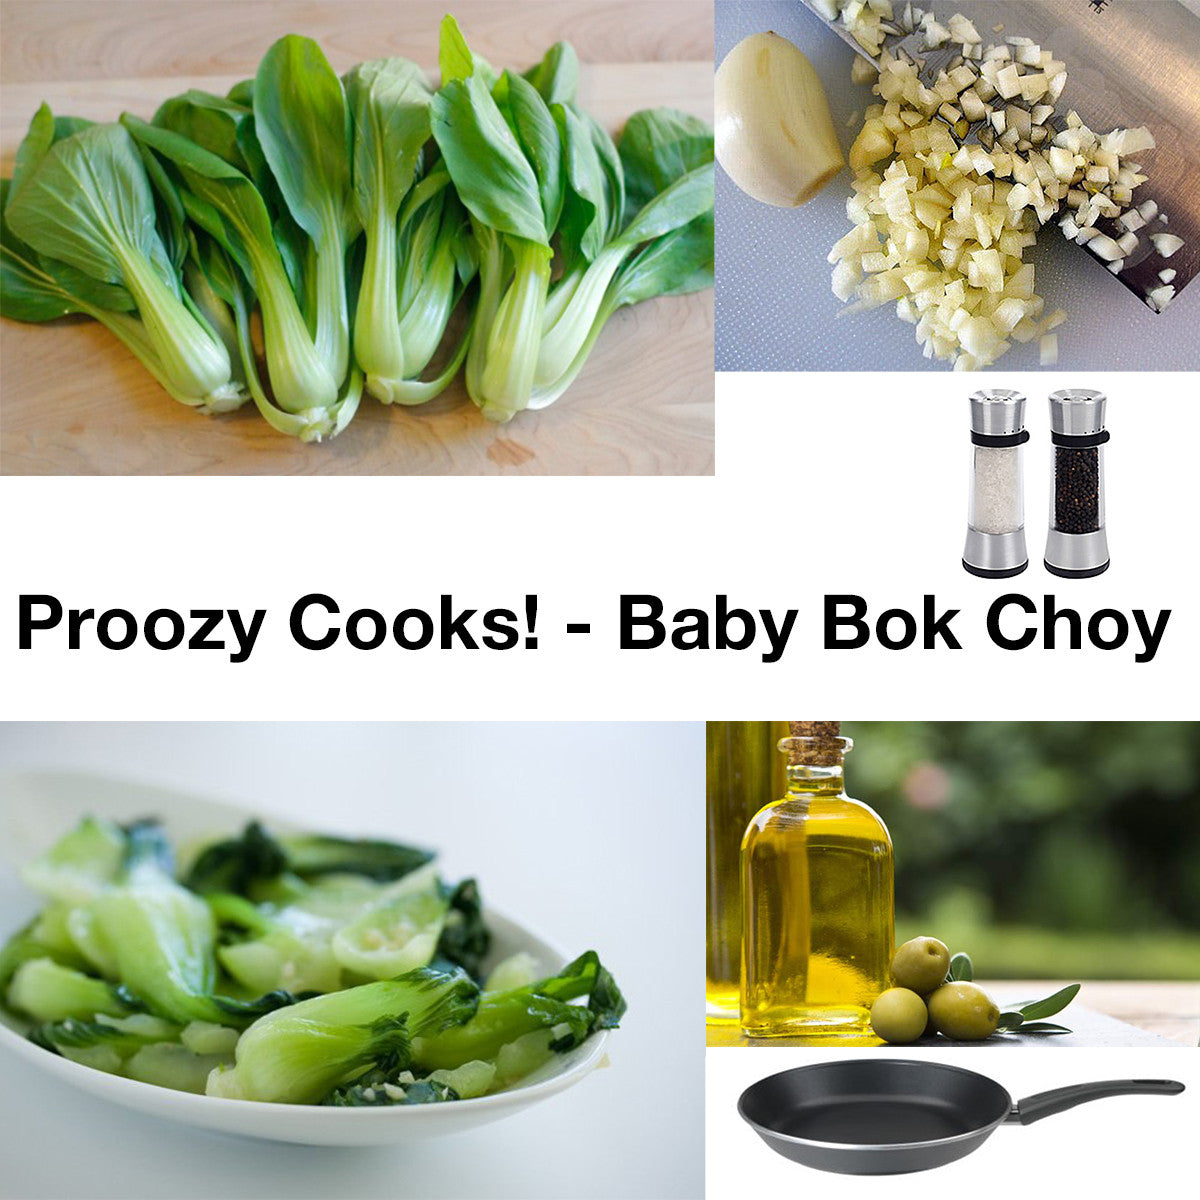 Proozy Cooks! - BABY BOK CHOY